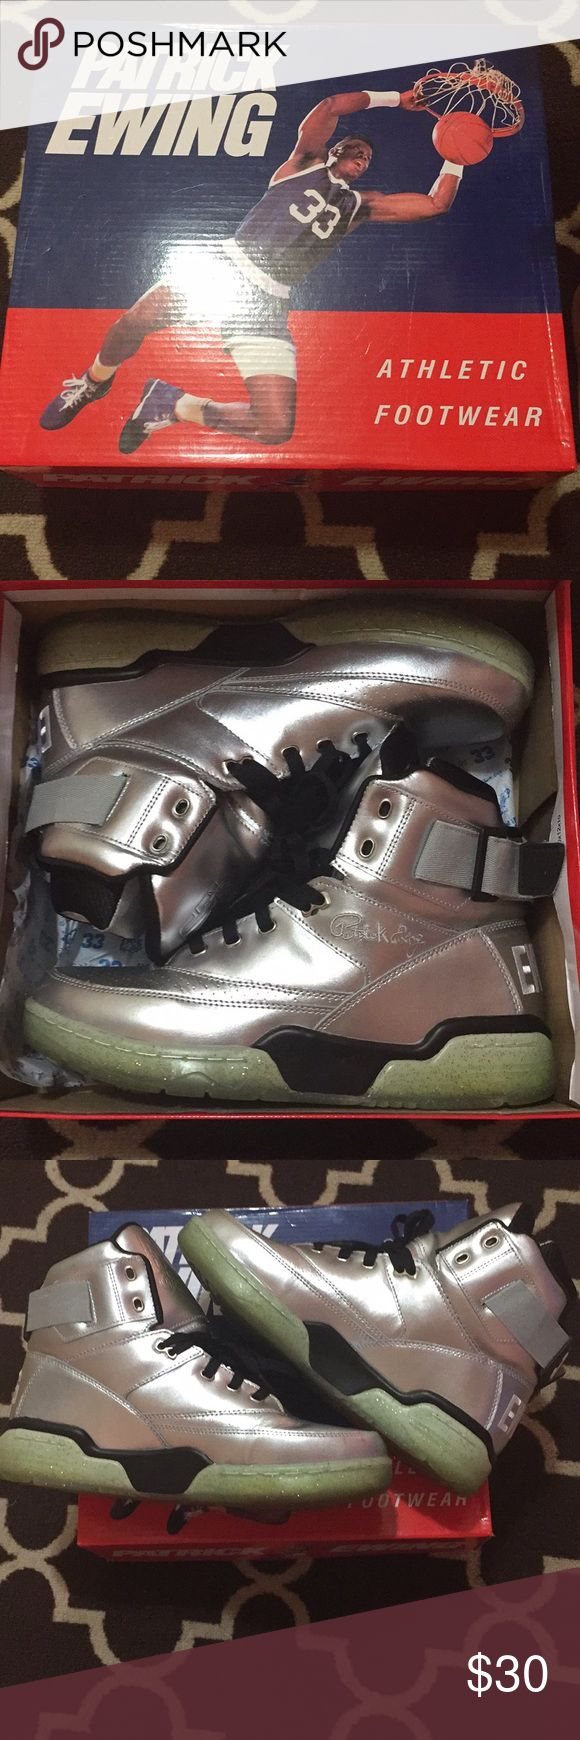 Patrick Ewing Athletic Footwear Silver Patrick Ewing shoes only worn once. Small crease on left shoe Ewing 33 HI Shoes Athletic Shoes